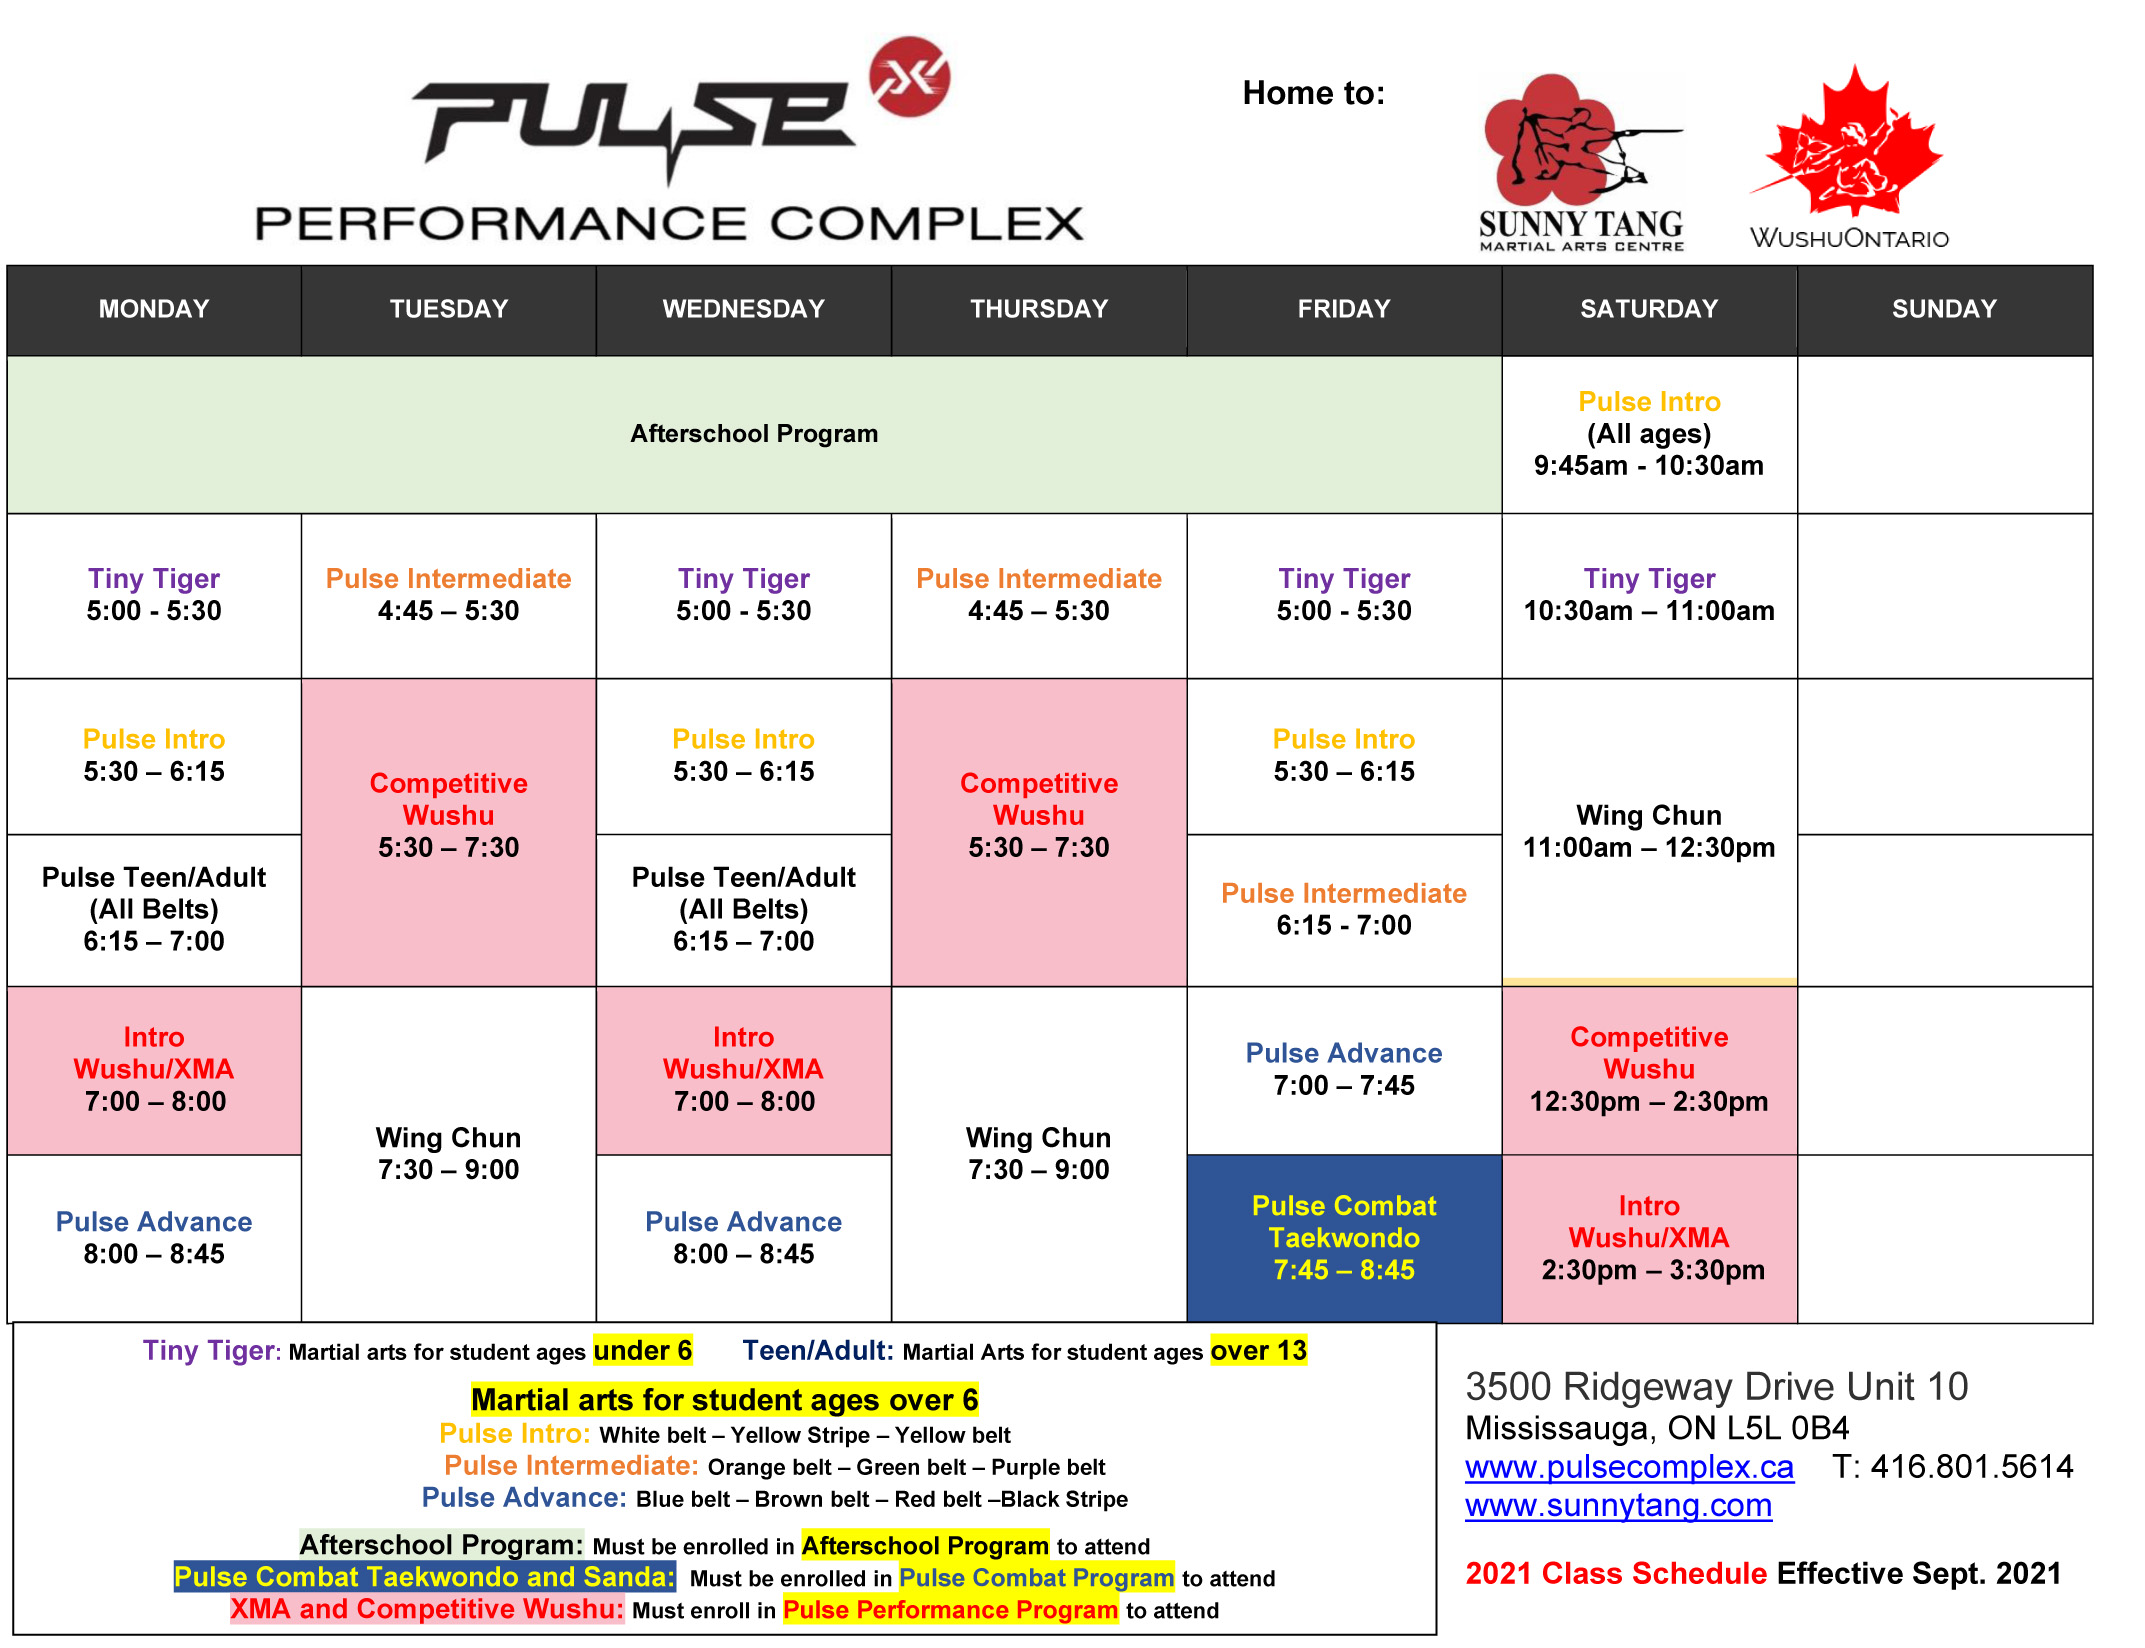 New Mississuaga Schedule Starting Monday, September 20th